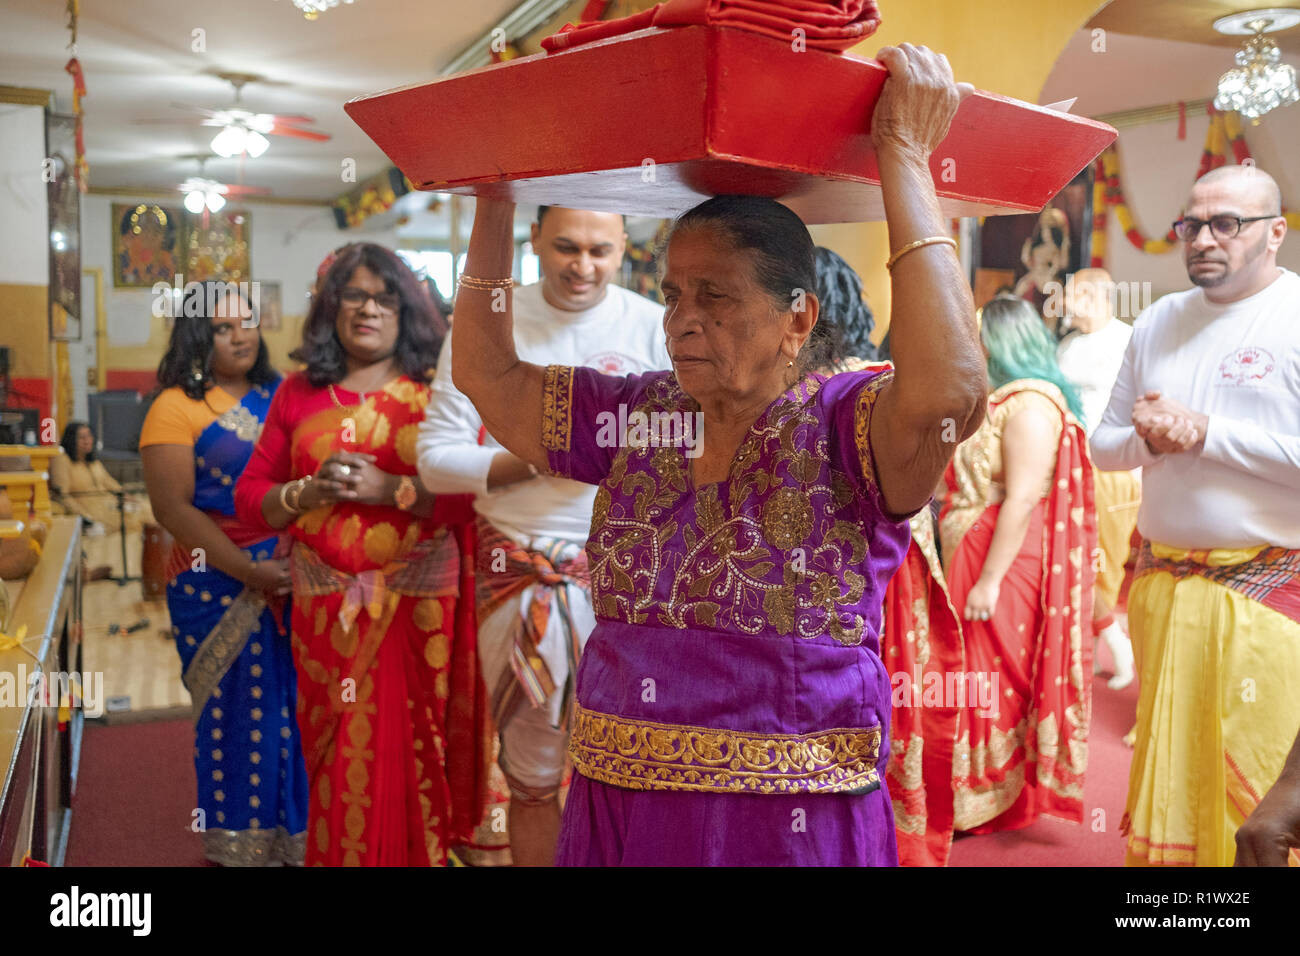 Surrounded by her family, an older Hindu woman brings offerings to the deities at a temple in Ozone Park, Queens, New York. - Stock Image